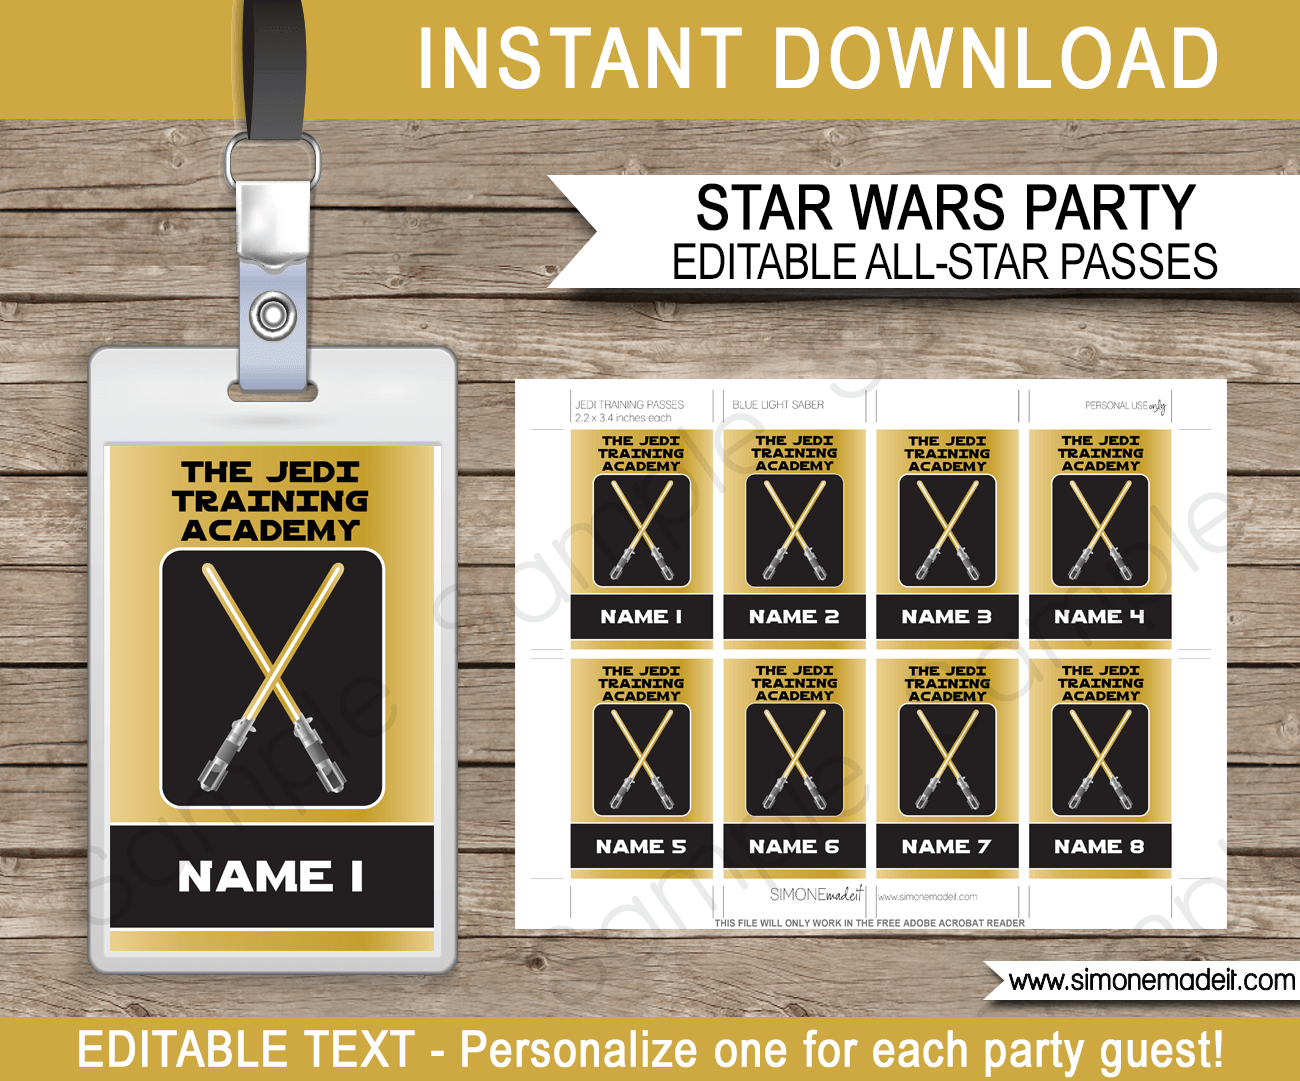 Gold star wars jedi training passes party favors for Star wars jedi certificate template free